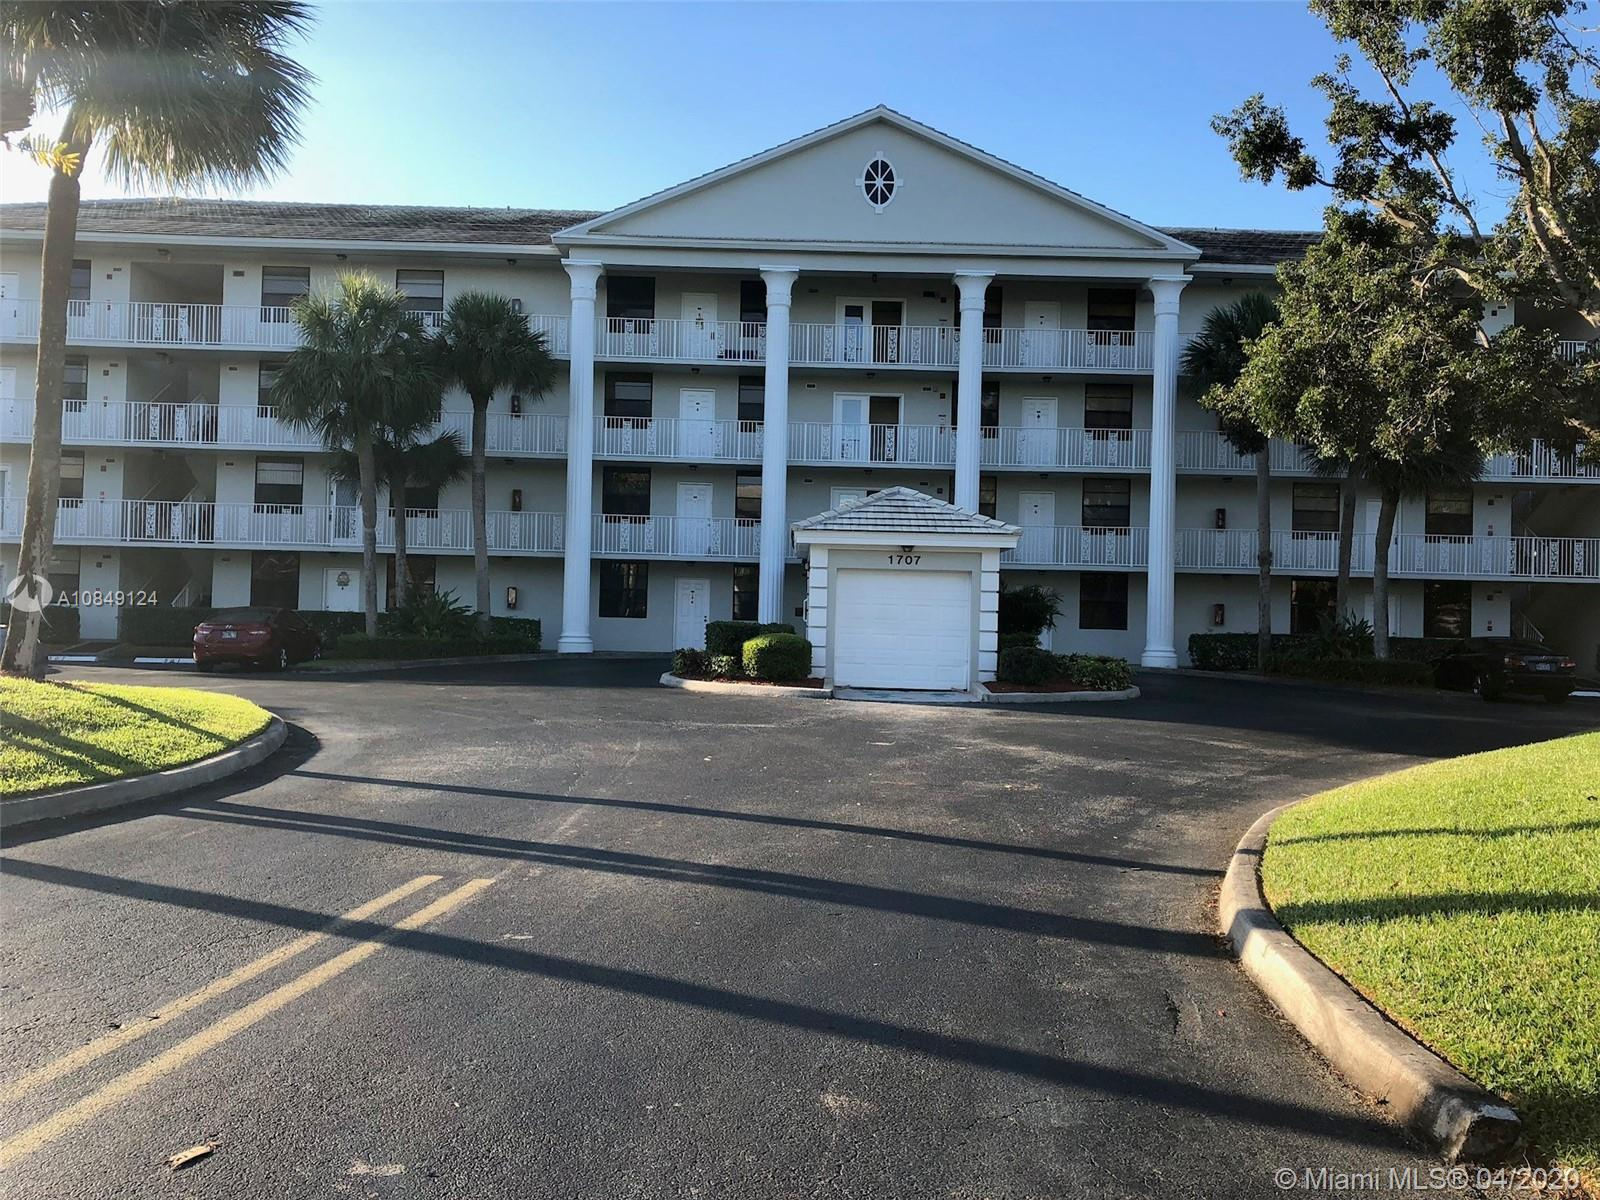 1707 Whitehall Dr # 205, Davie, Florida 33324, 2 Bedrooms Bedrooms, ,2 BathroomsBathrooms,Residential,For Sale,1707 Whitehall Dr # 205,A10849124